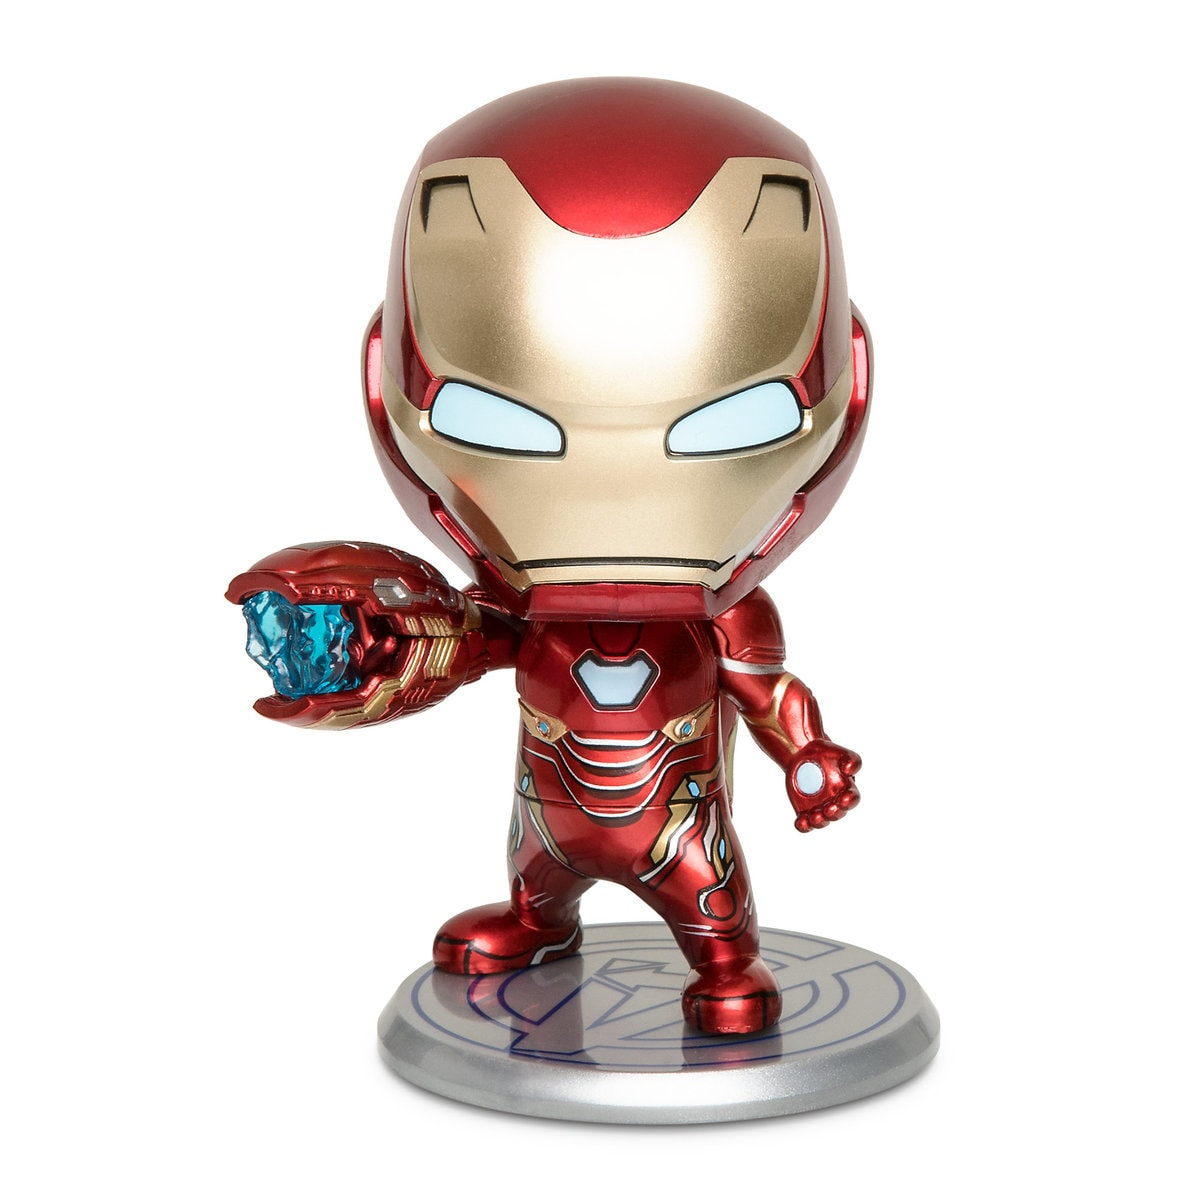 4533e2f3 Product Image of Iron Man Mark L Cosbaby Bobble-Head Figure by Hot Toys -